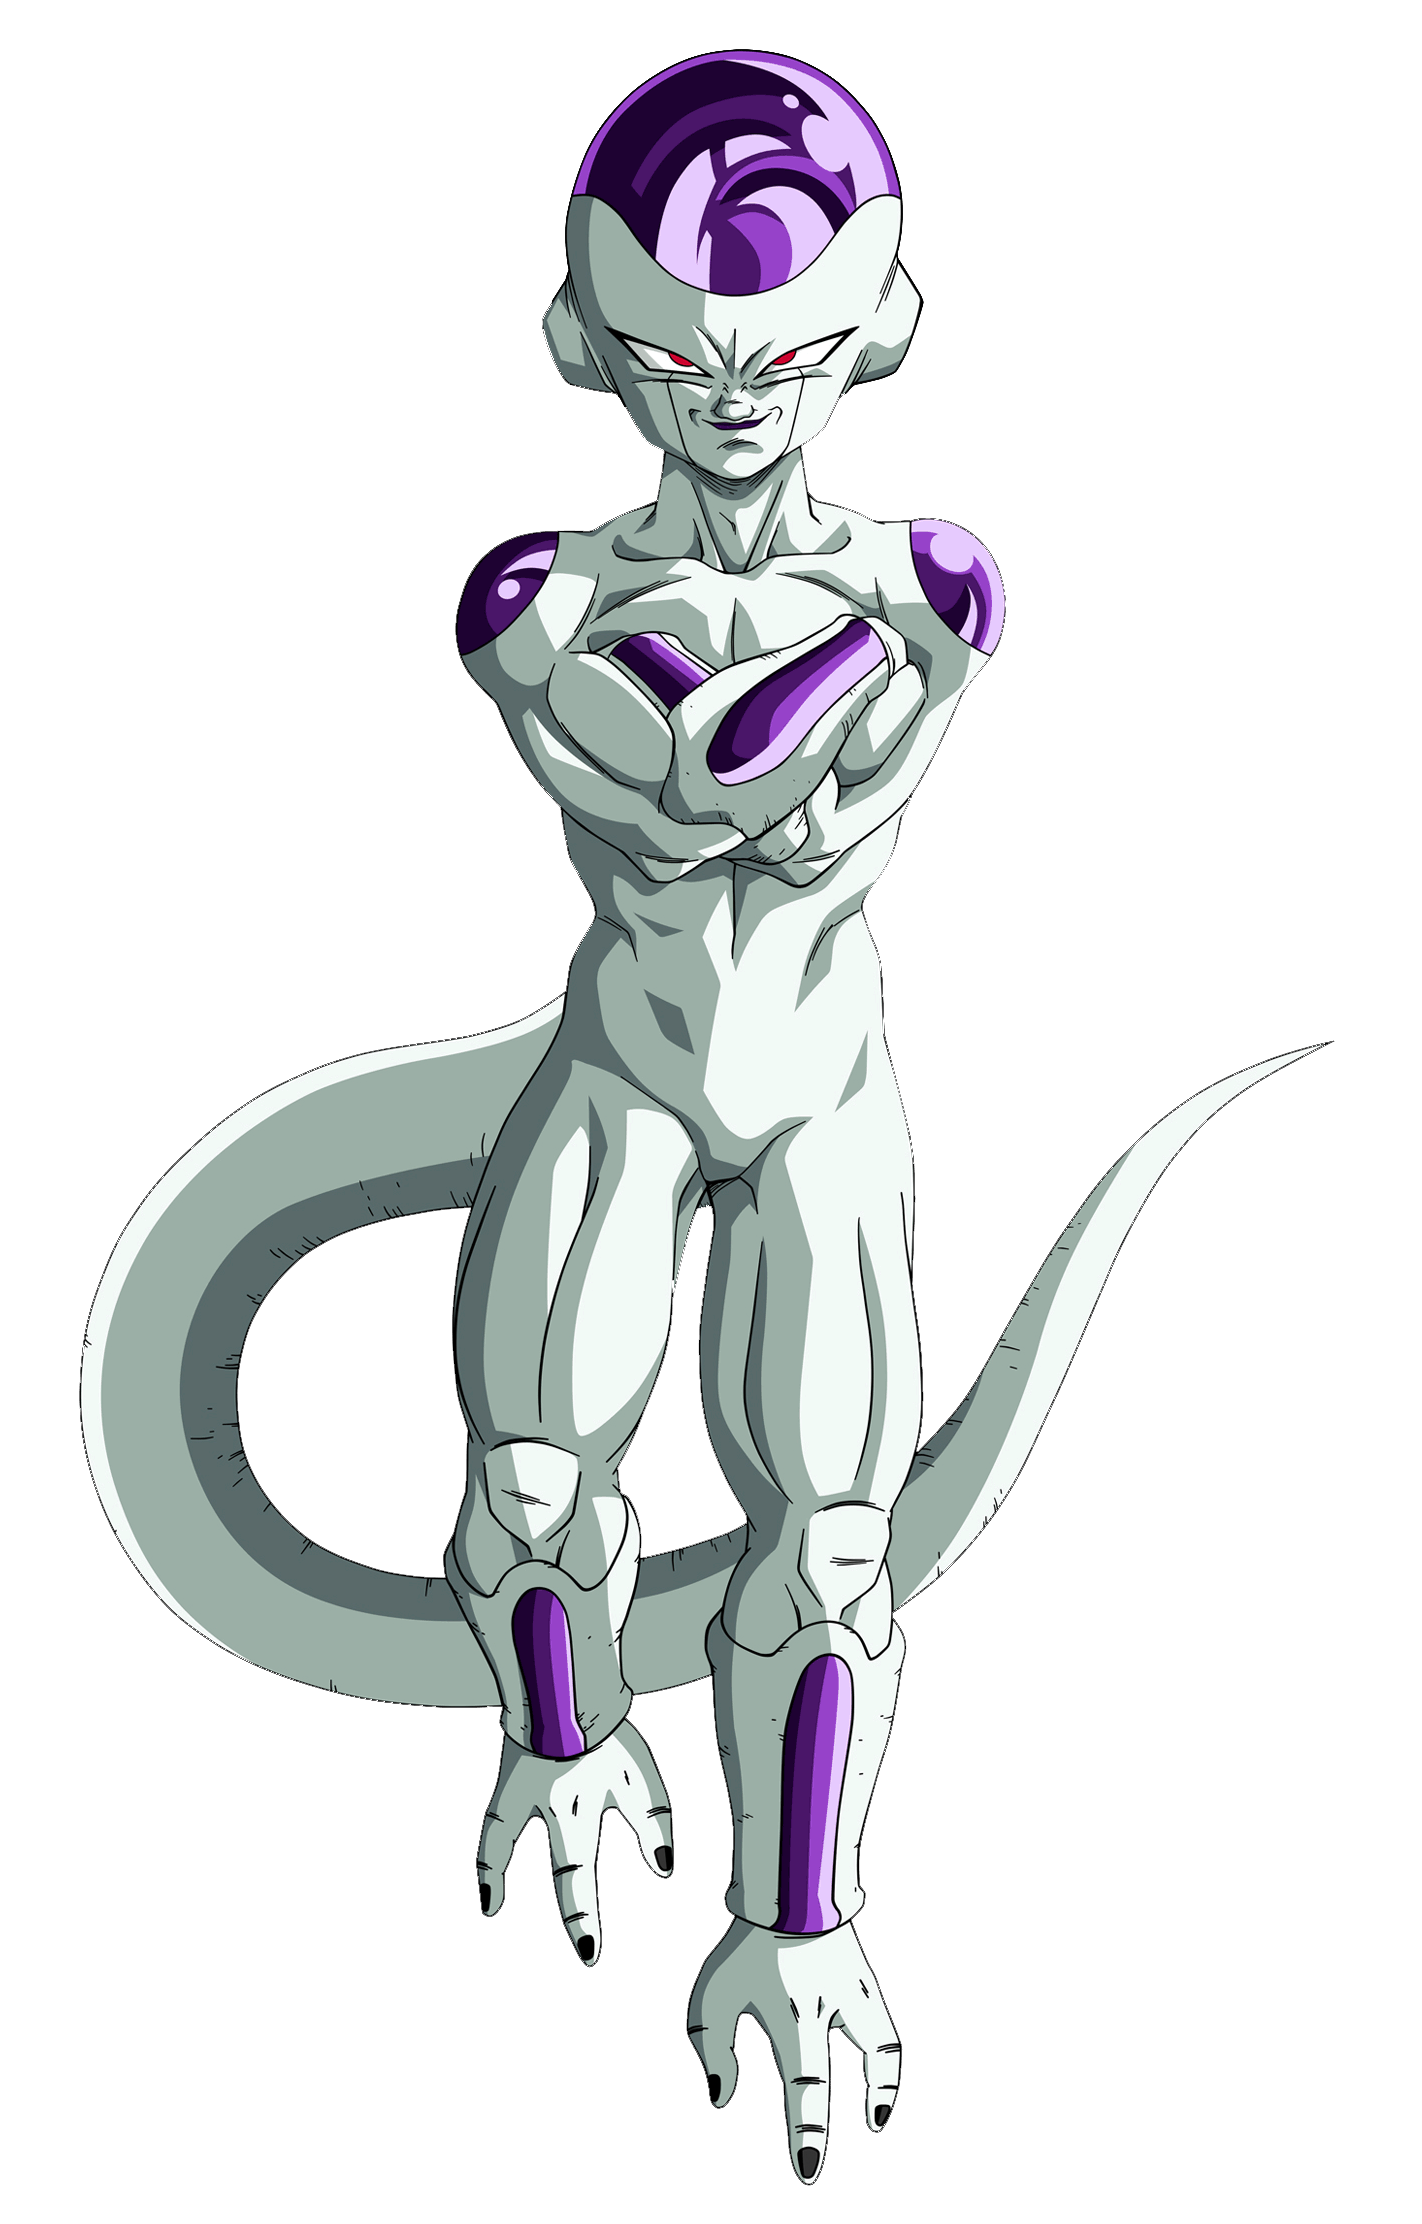 Image - 2204548-frieza final form.png | Dragon Ball Wiki ...